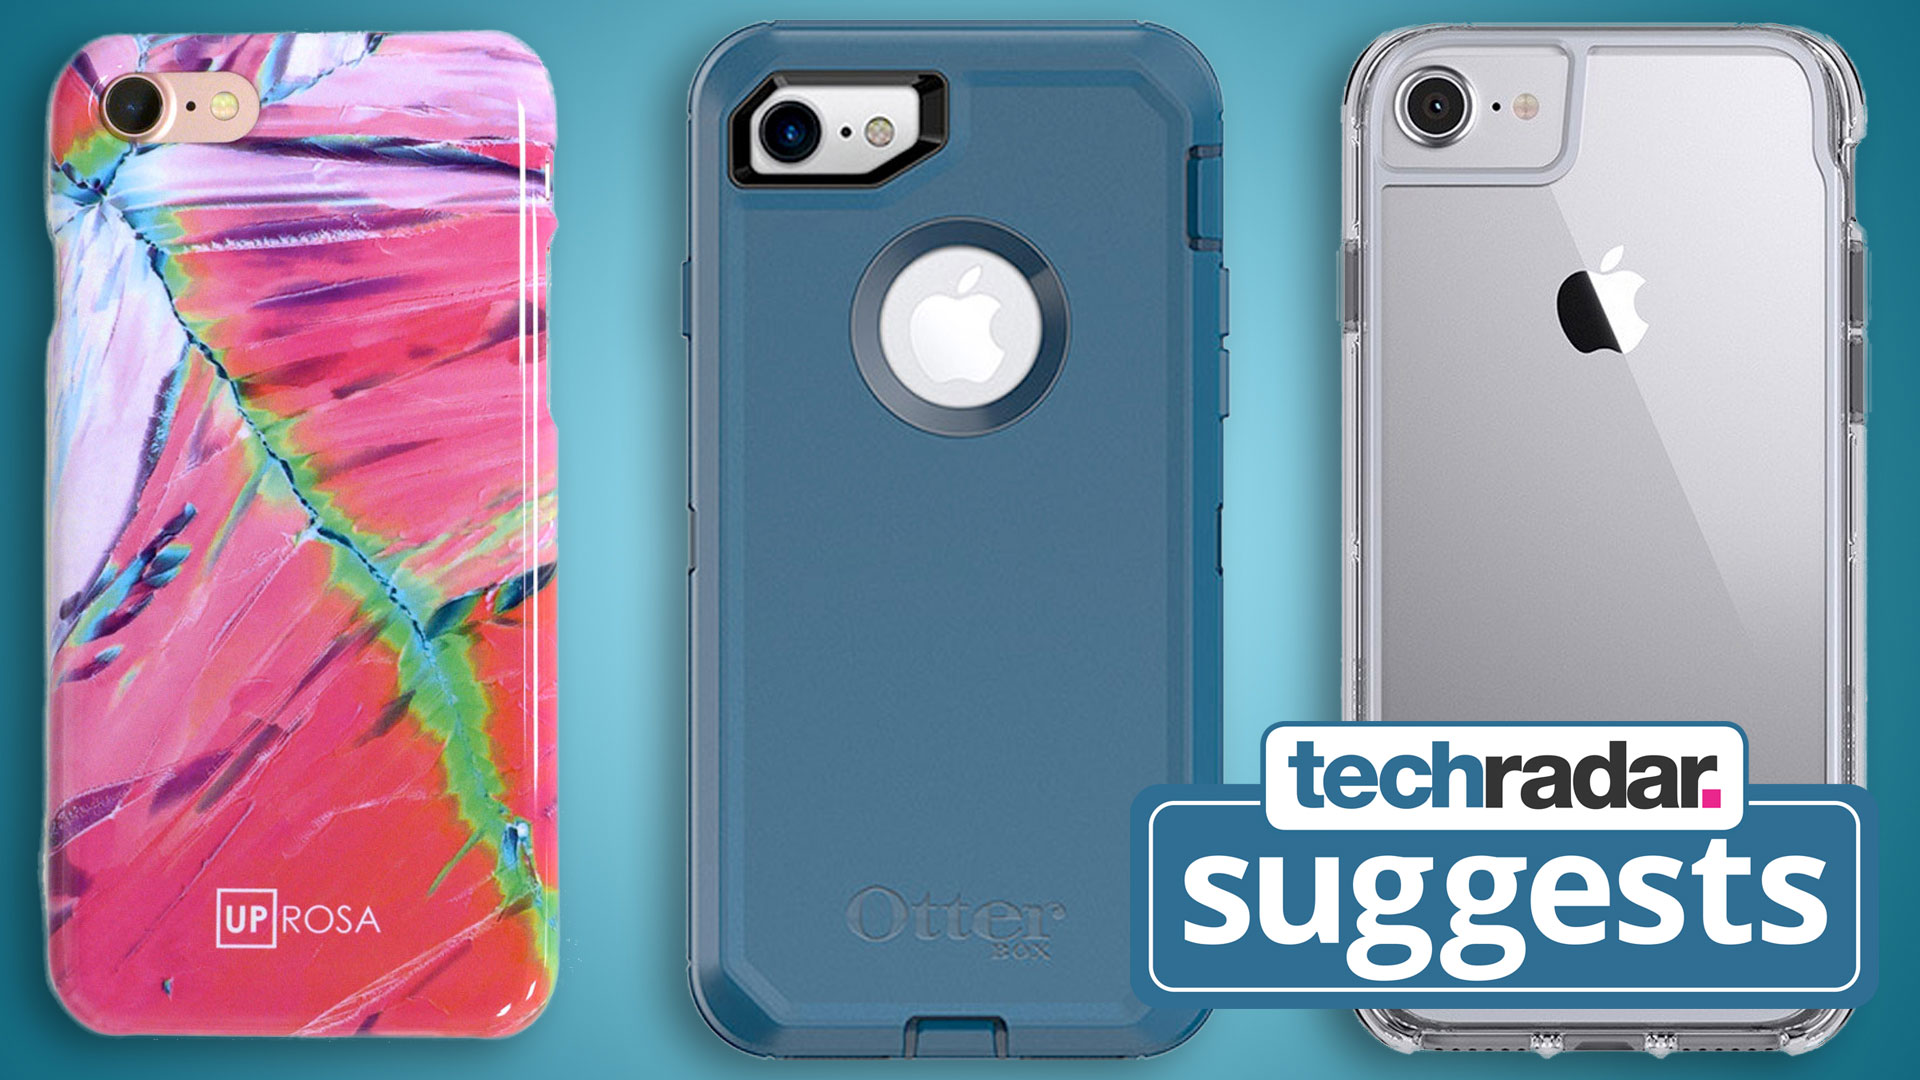 iPhone 7 Cases & Best iPhone 7 Plus